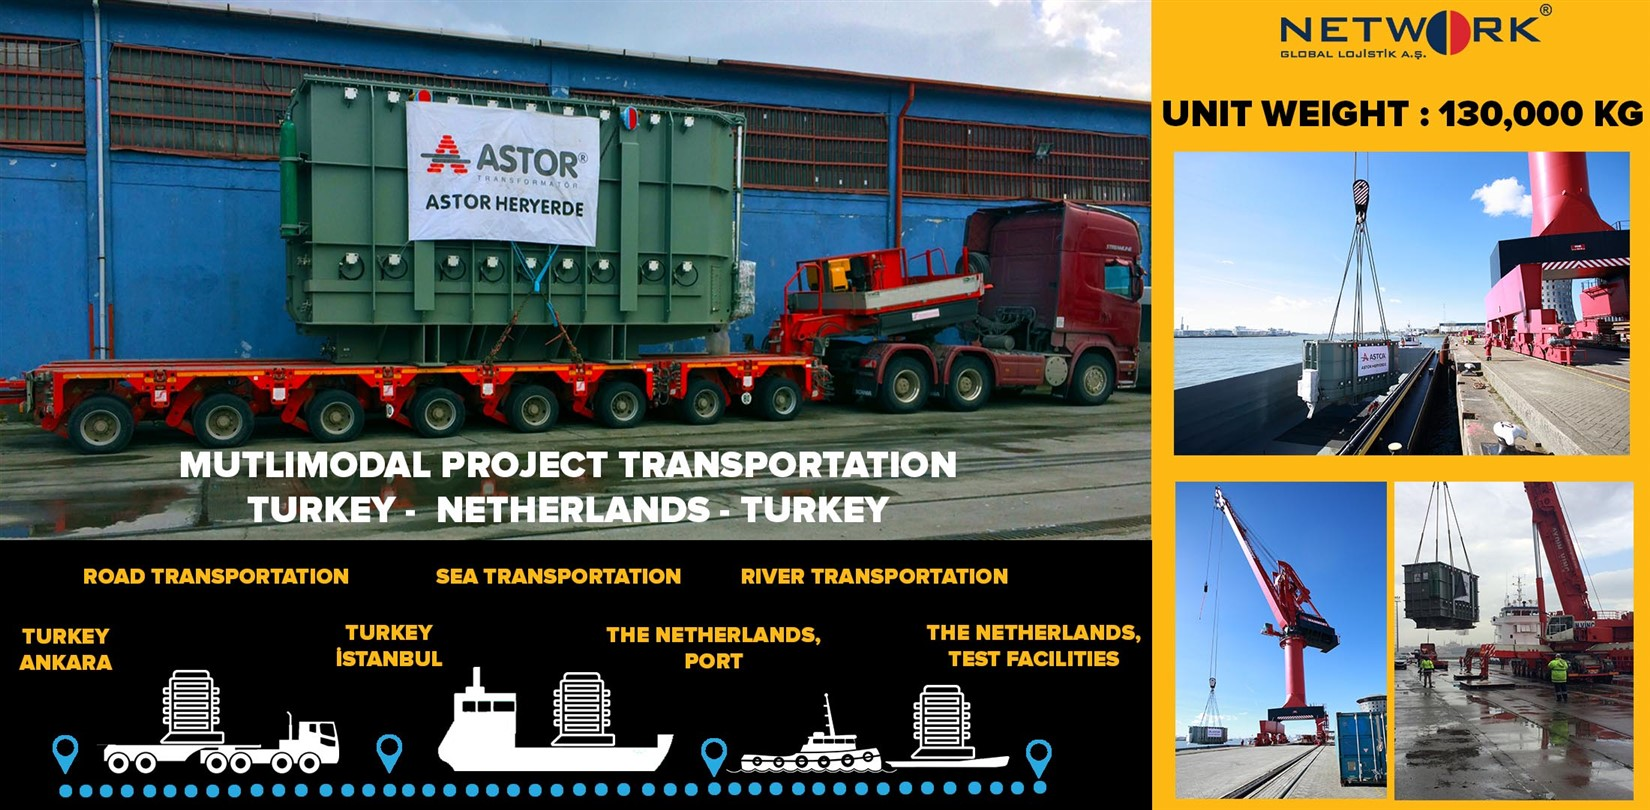 Turkey - Netherlands - Turkey Multi Modal Project Transportation